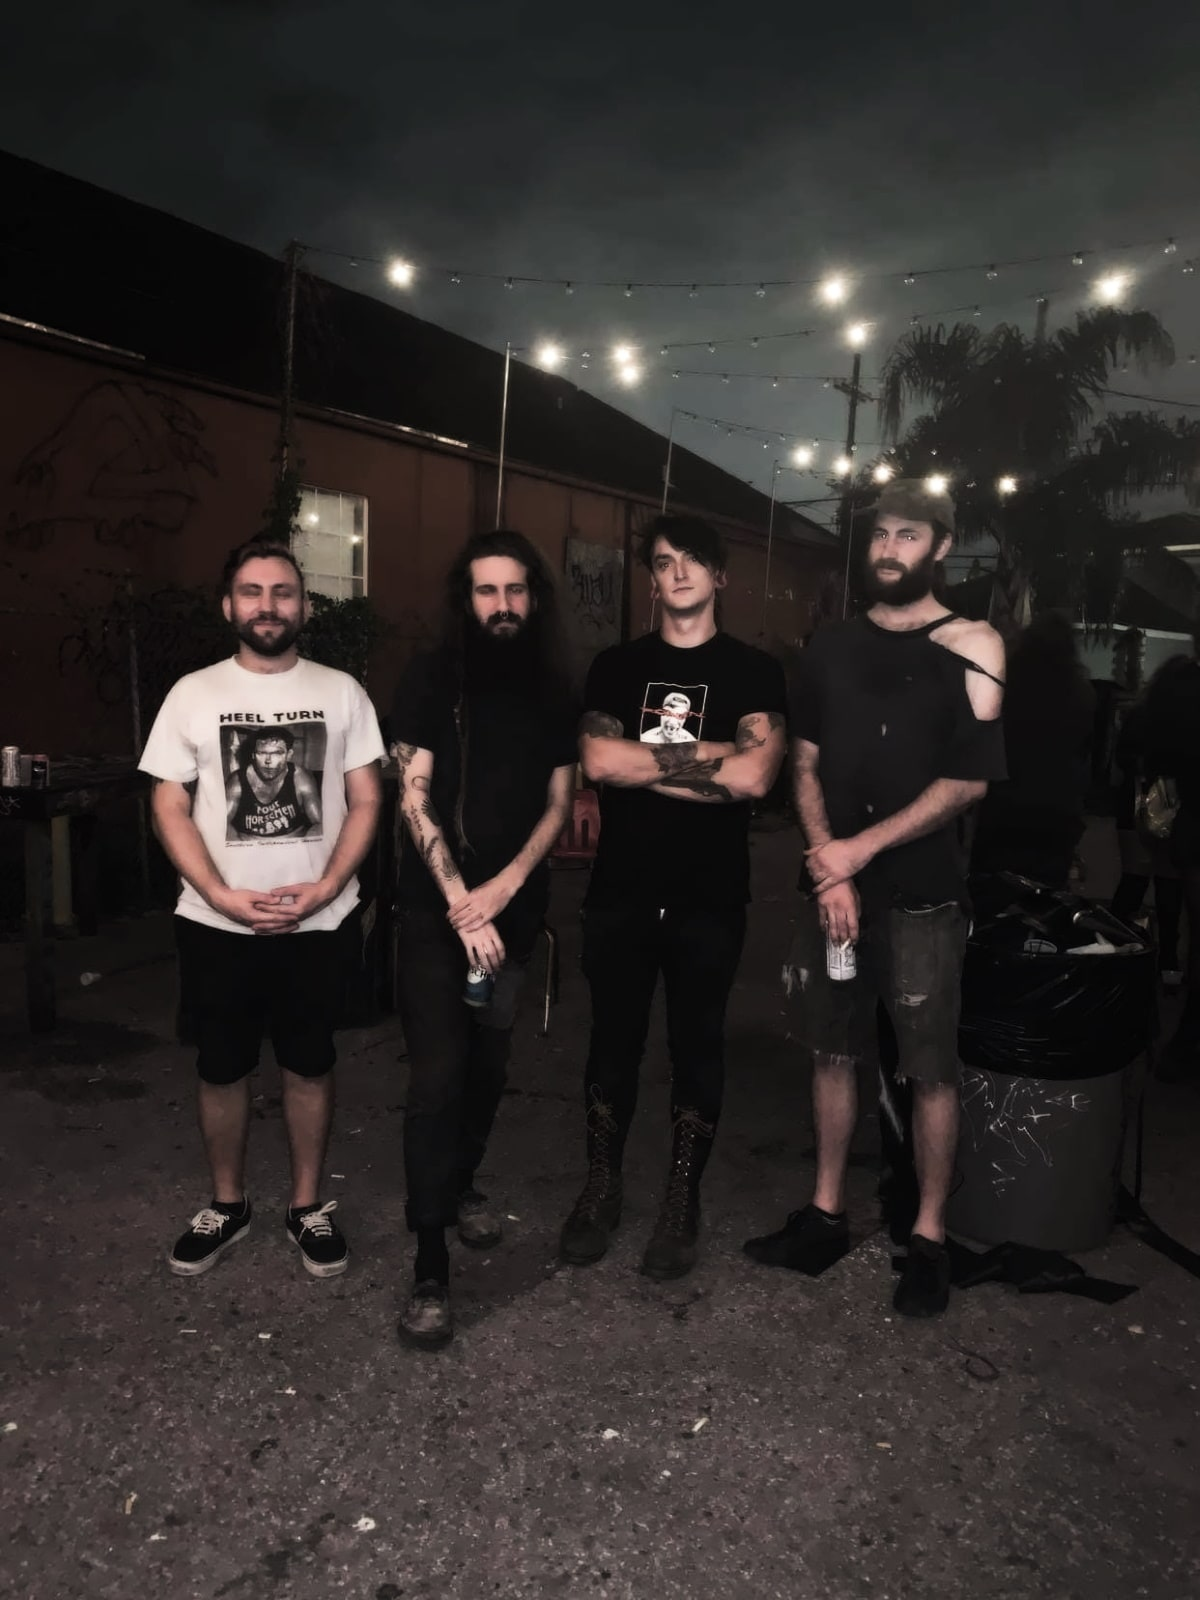 Moments of Being not pictured - vocalist Zack Blaze